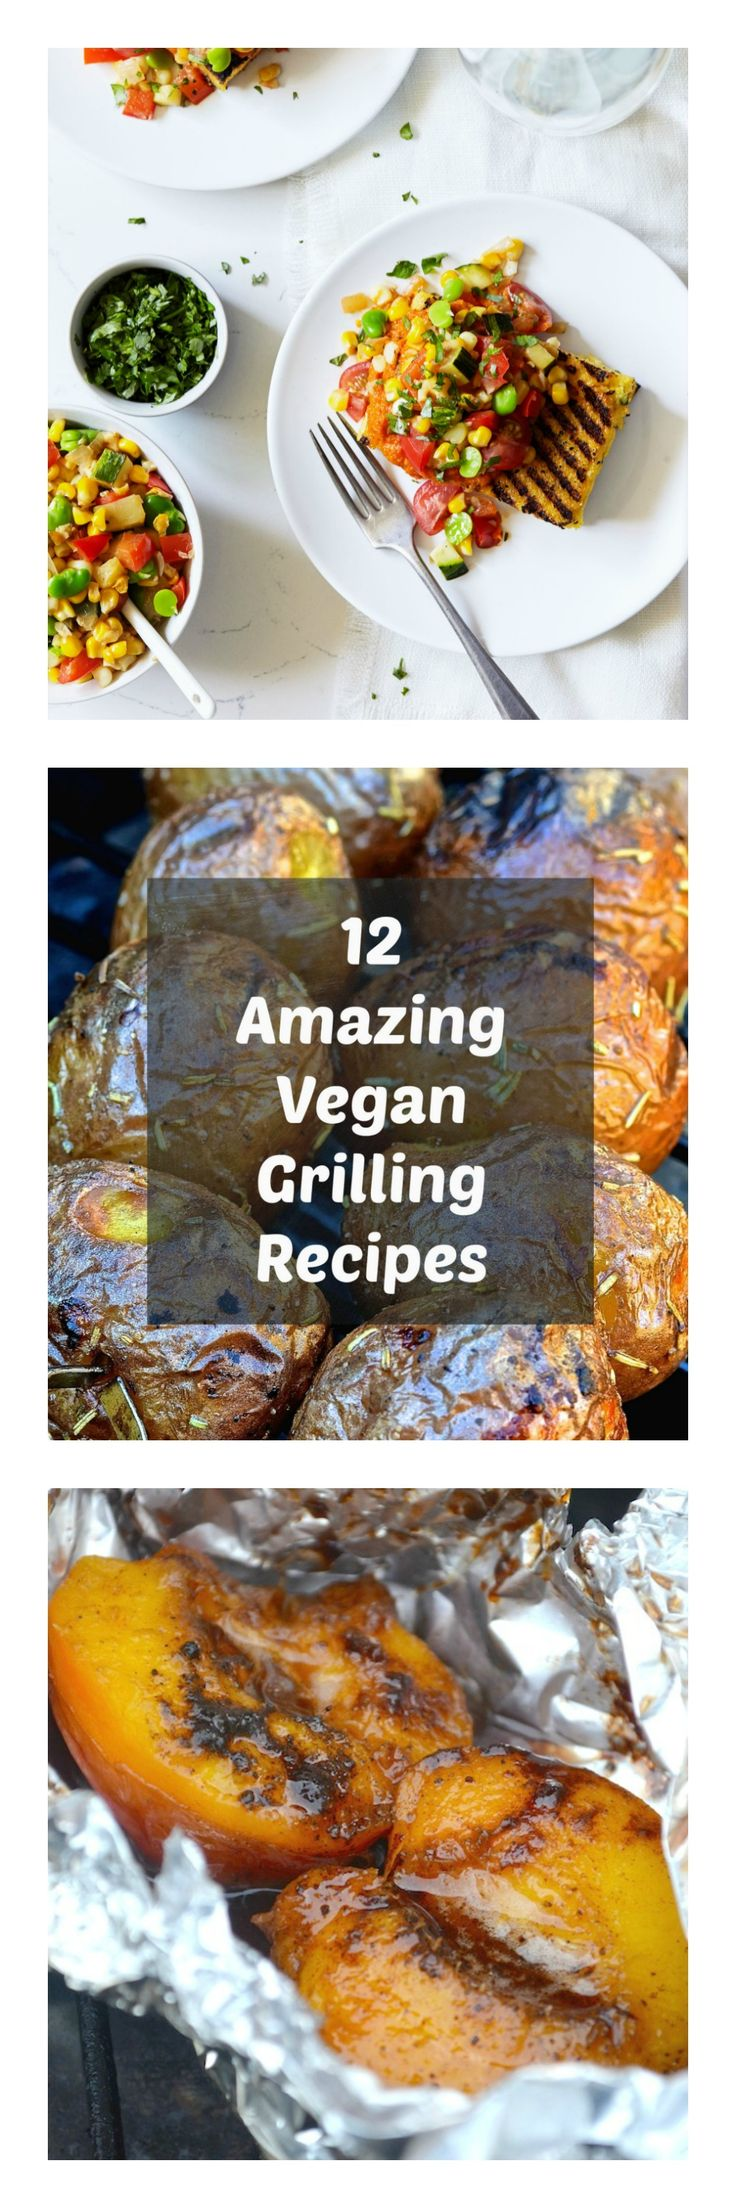 There is no need to resort to a sad veggie sausage in a bun when you can cook up this wonderful selection of healthy, vegan grilling recipes this summer!